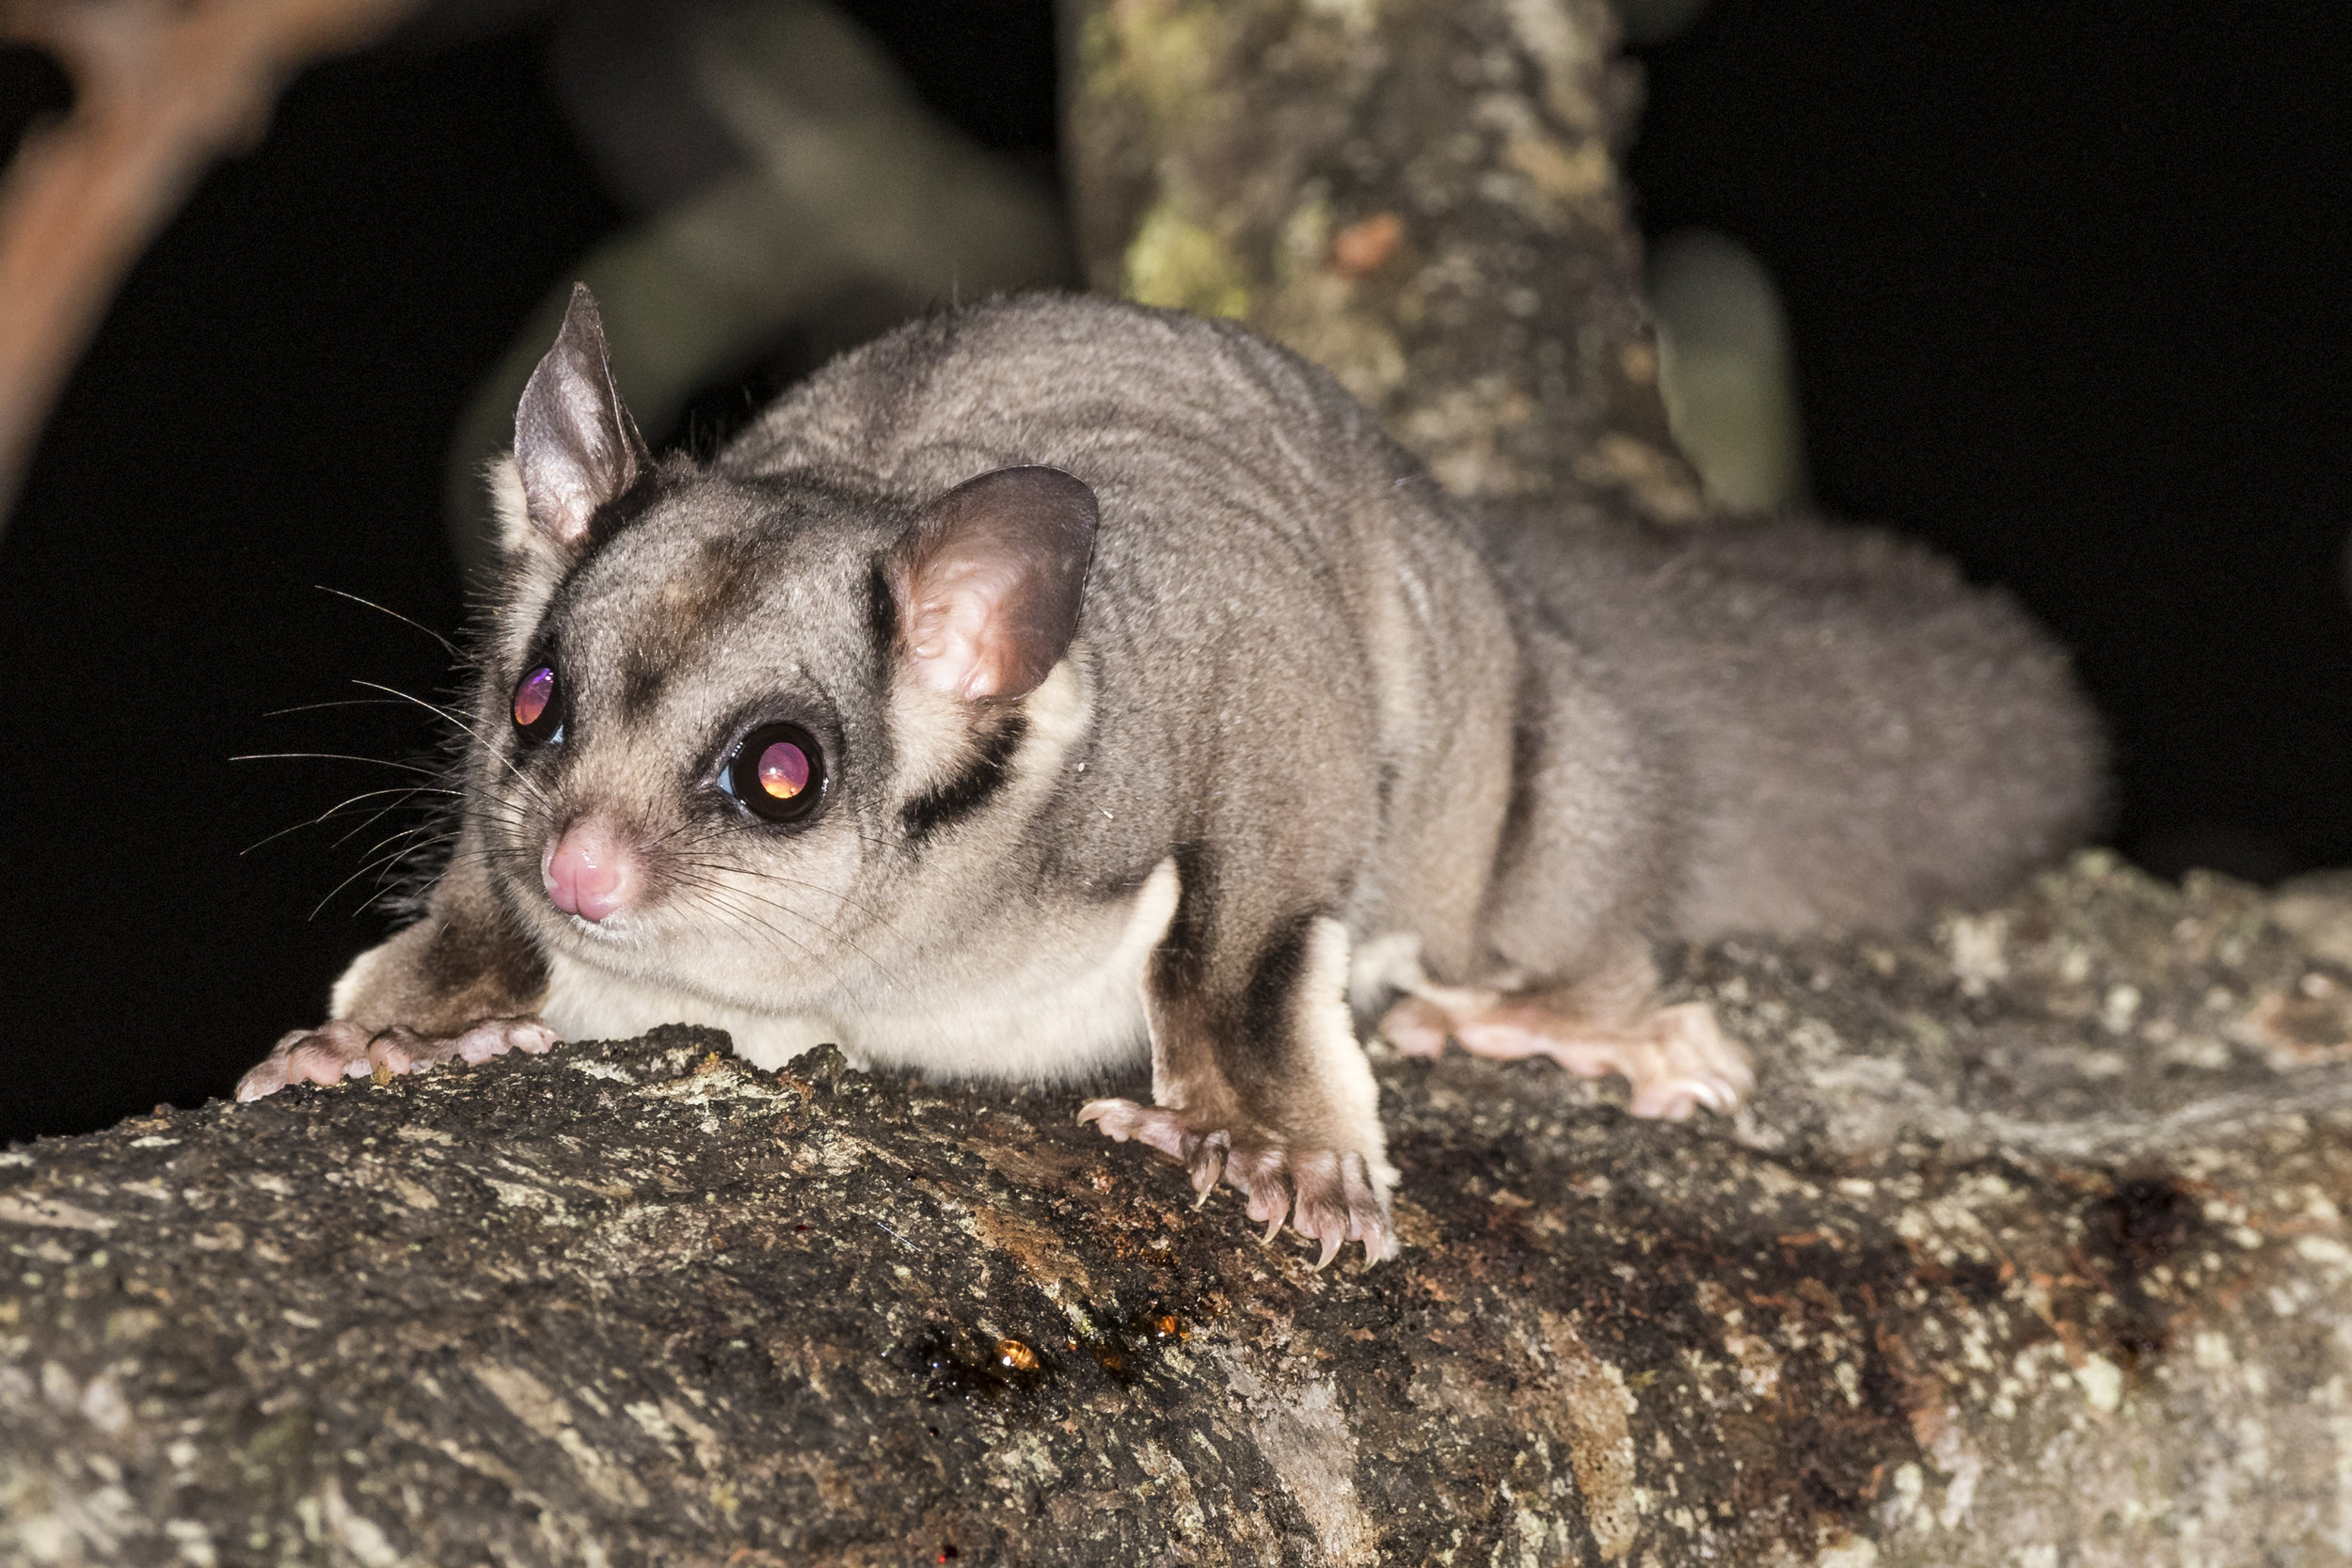 If you're lucky, the distinctive face of a Sugar Glider may greet you on a night walk.  Image: David Whelan